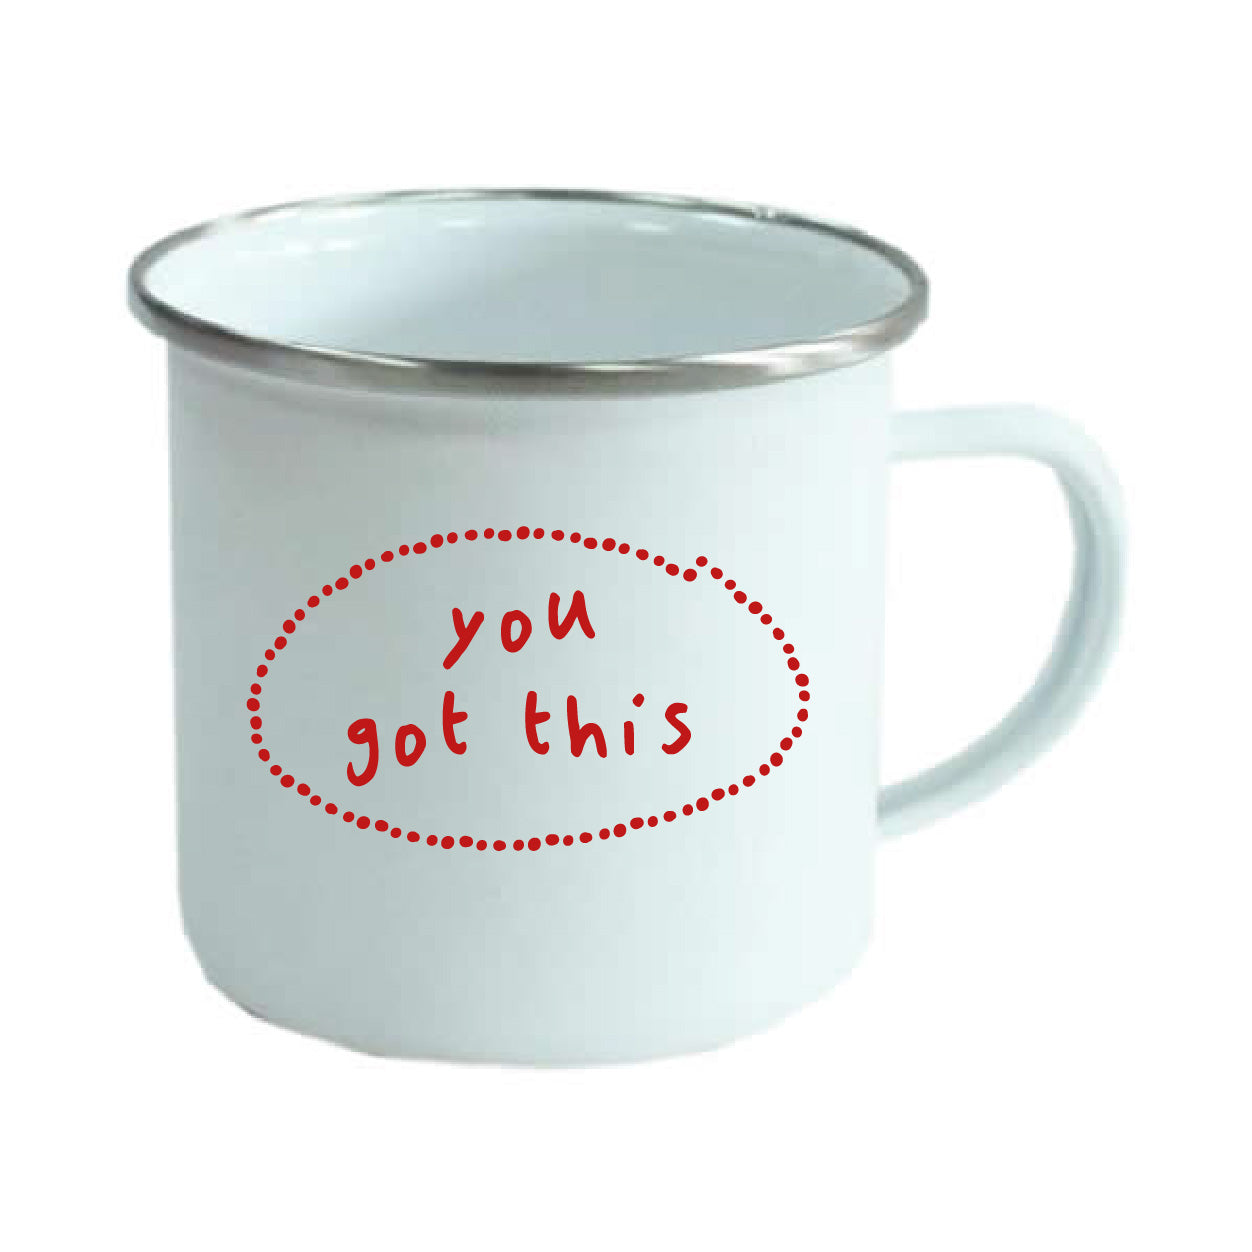 Personalised white enamel mug